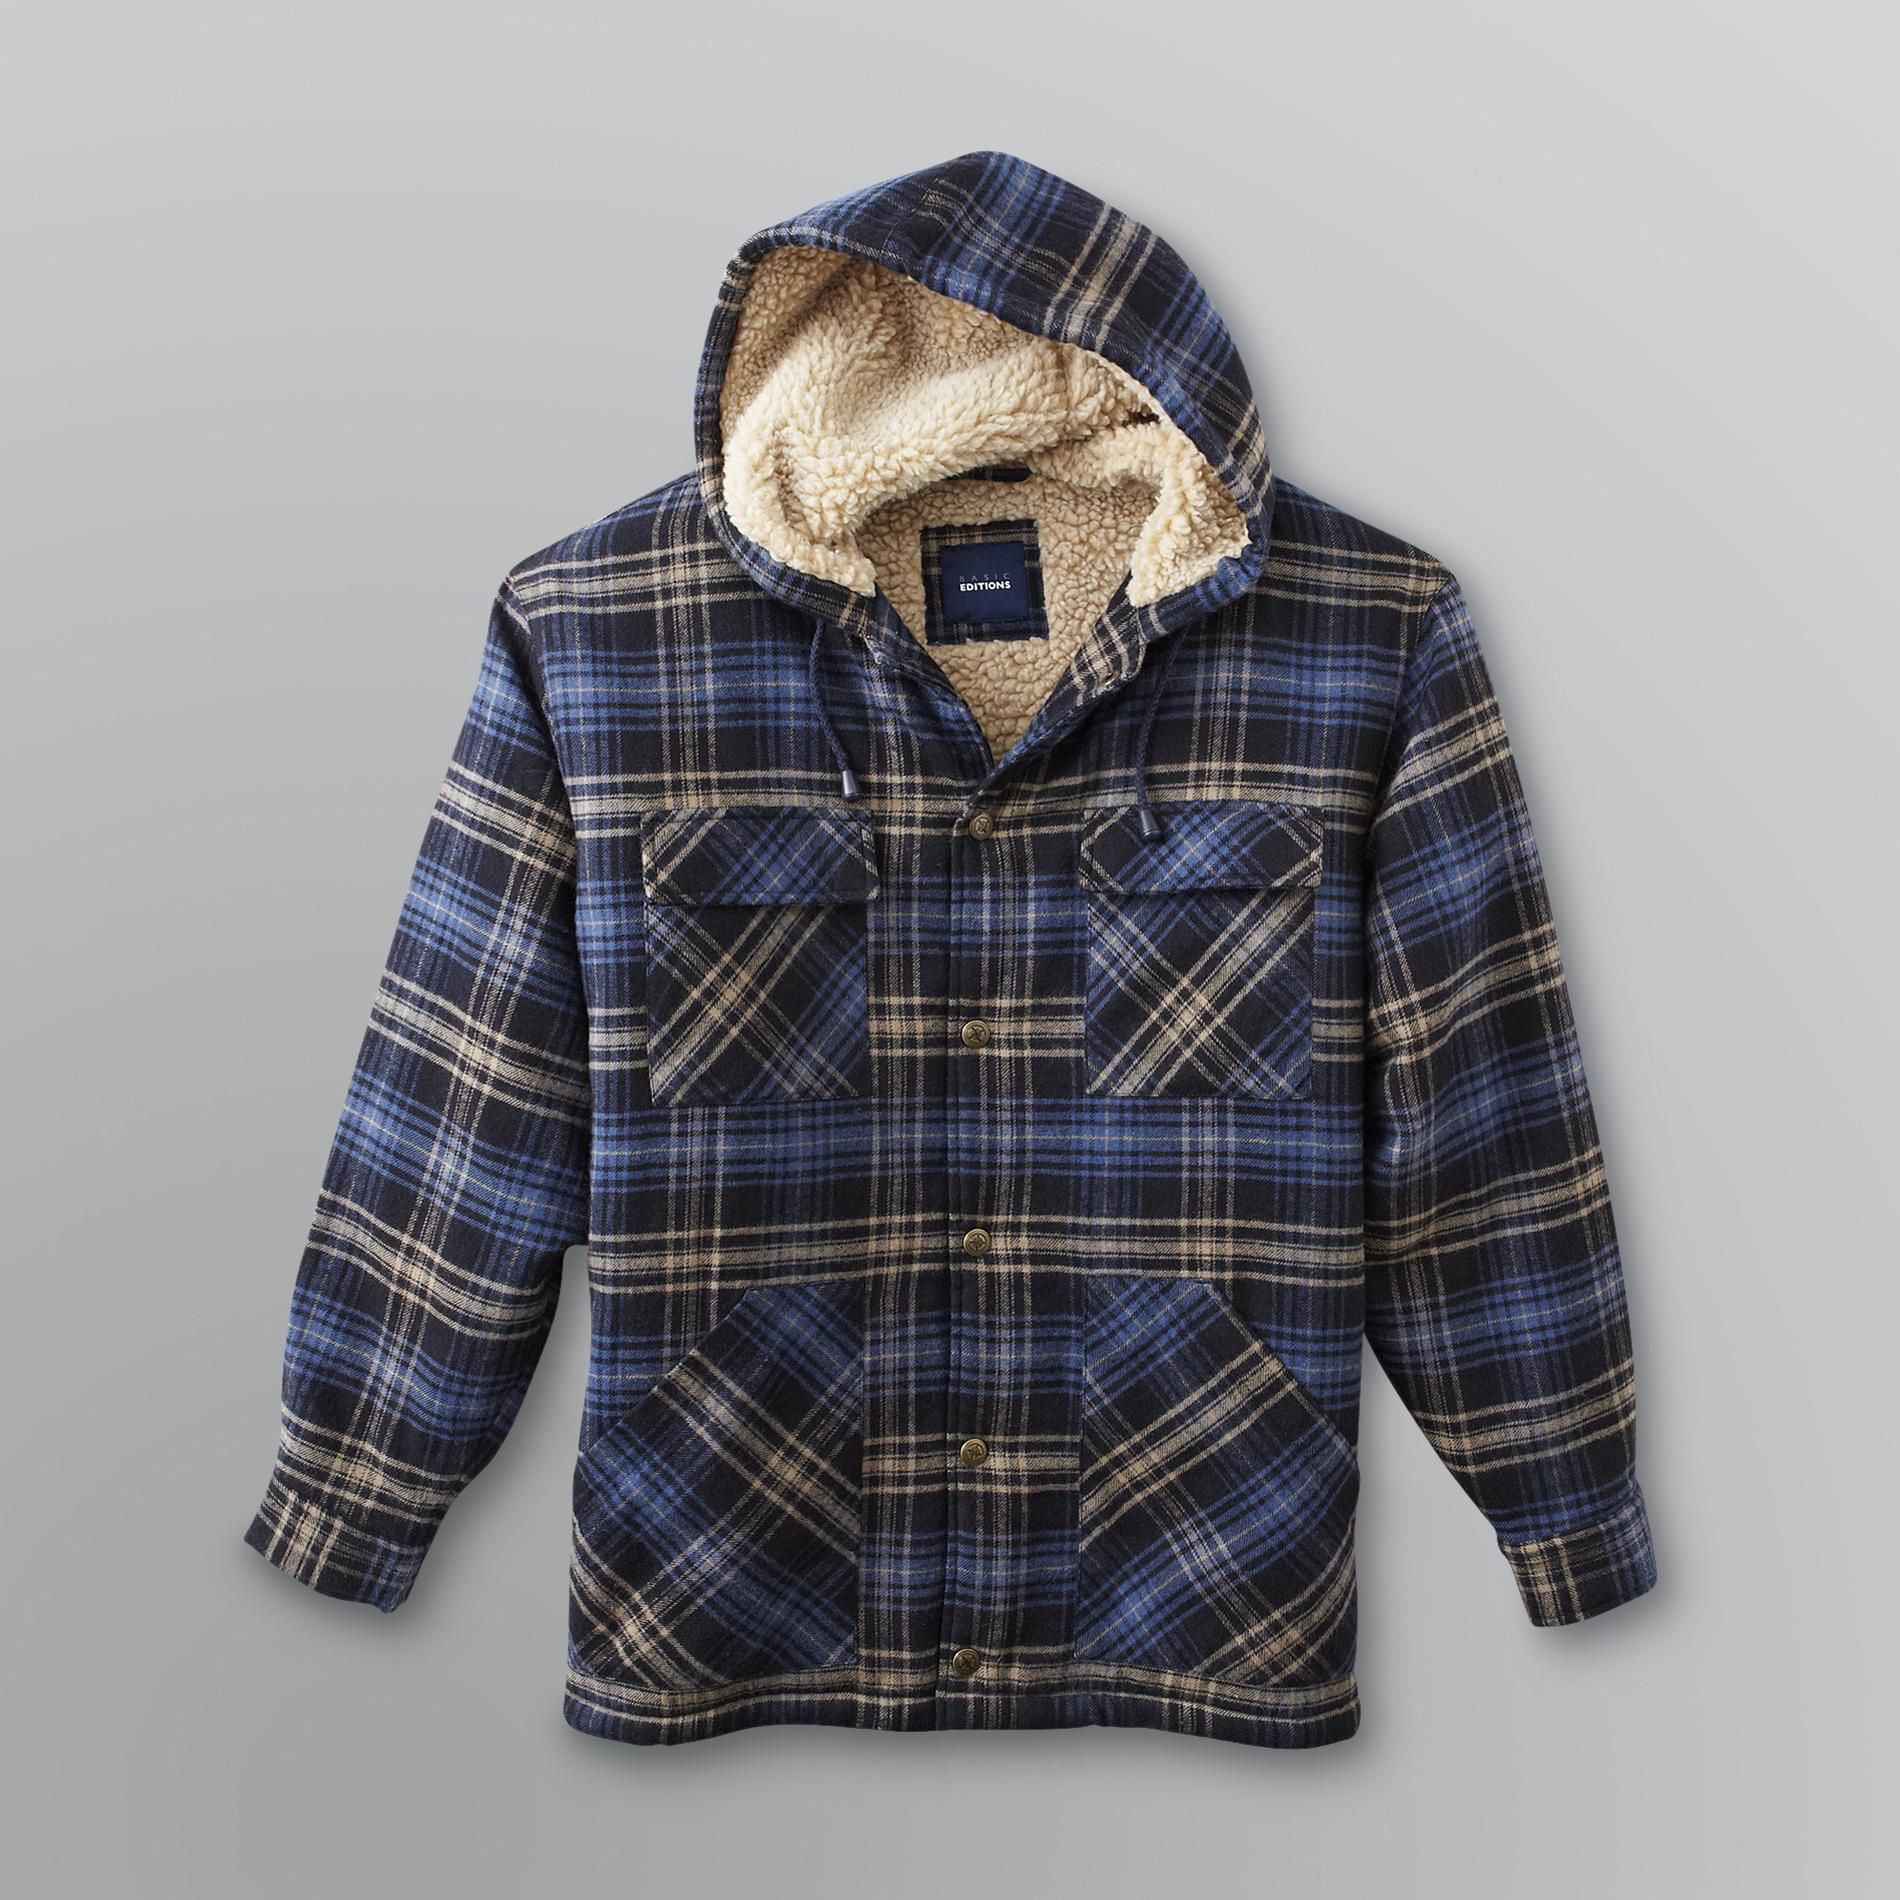 Basic Editions Mens Sherpa Lined Hooded Flannel Jacket